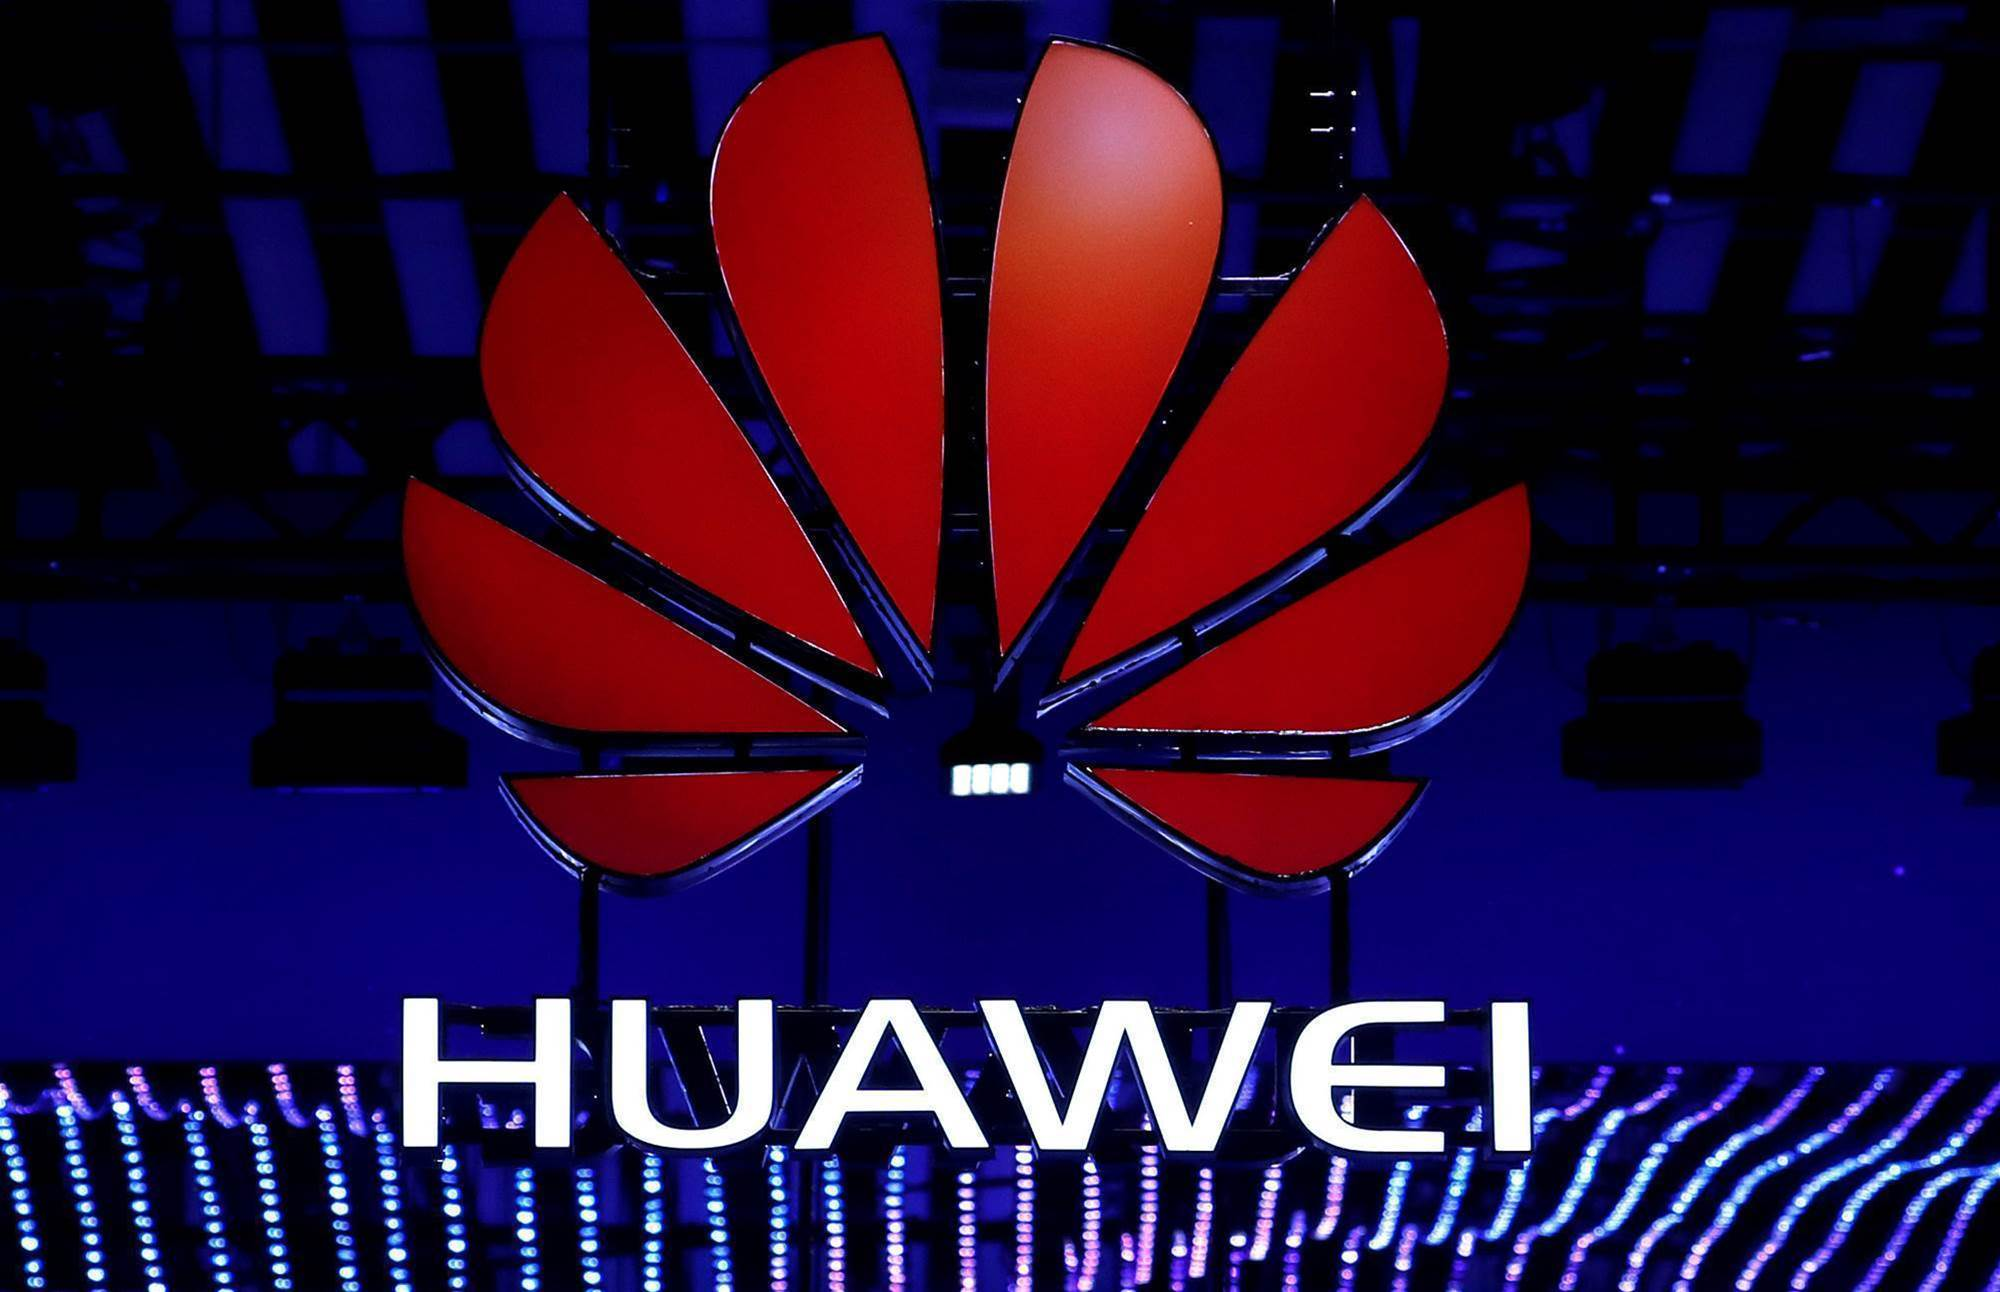 Huawei unveils new AI chips for servers